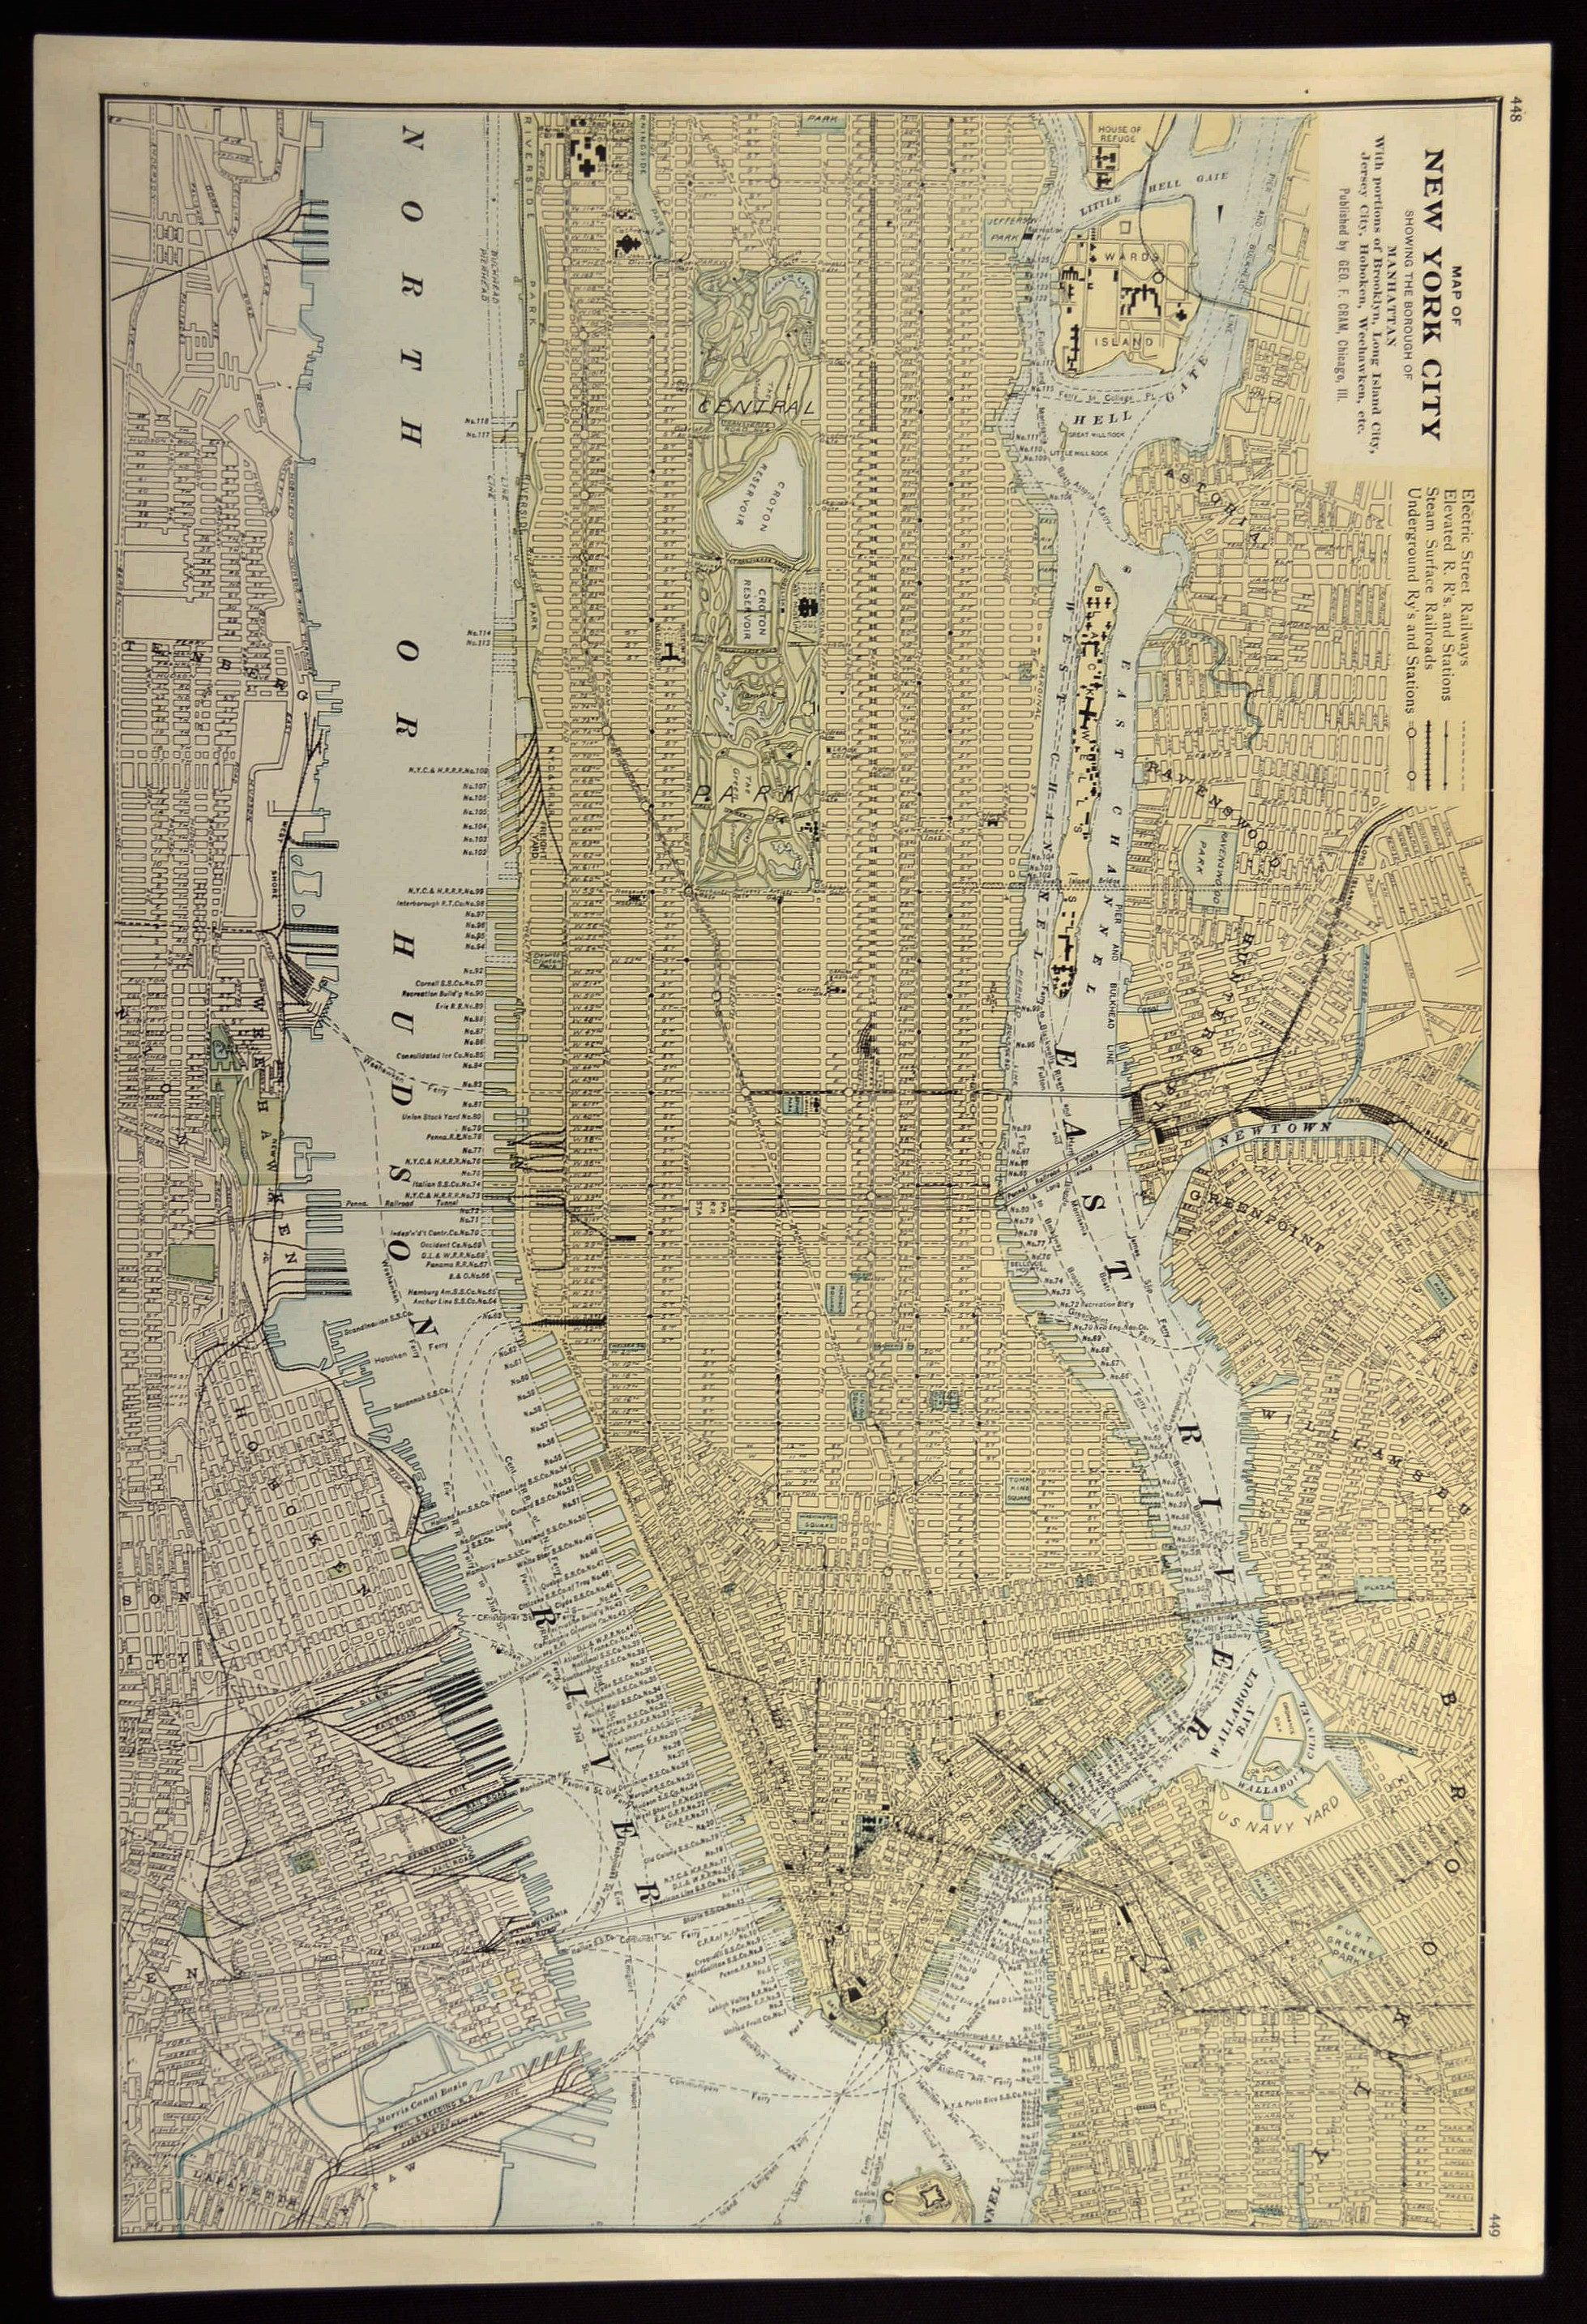 manhattan map manhattan street map new york city map antique